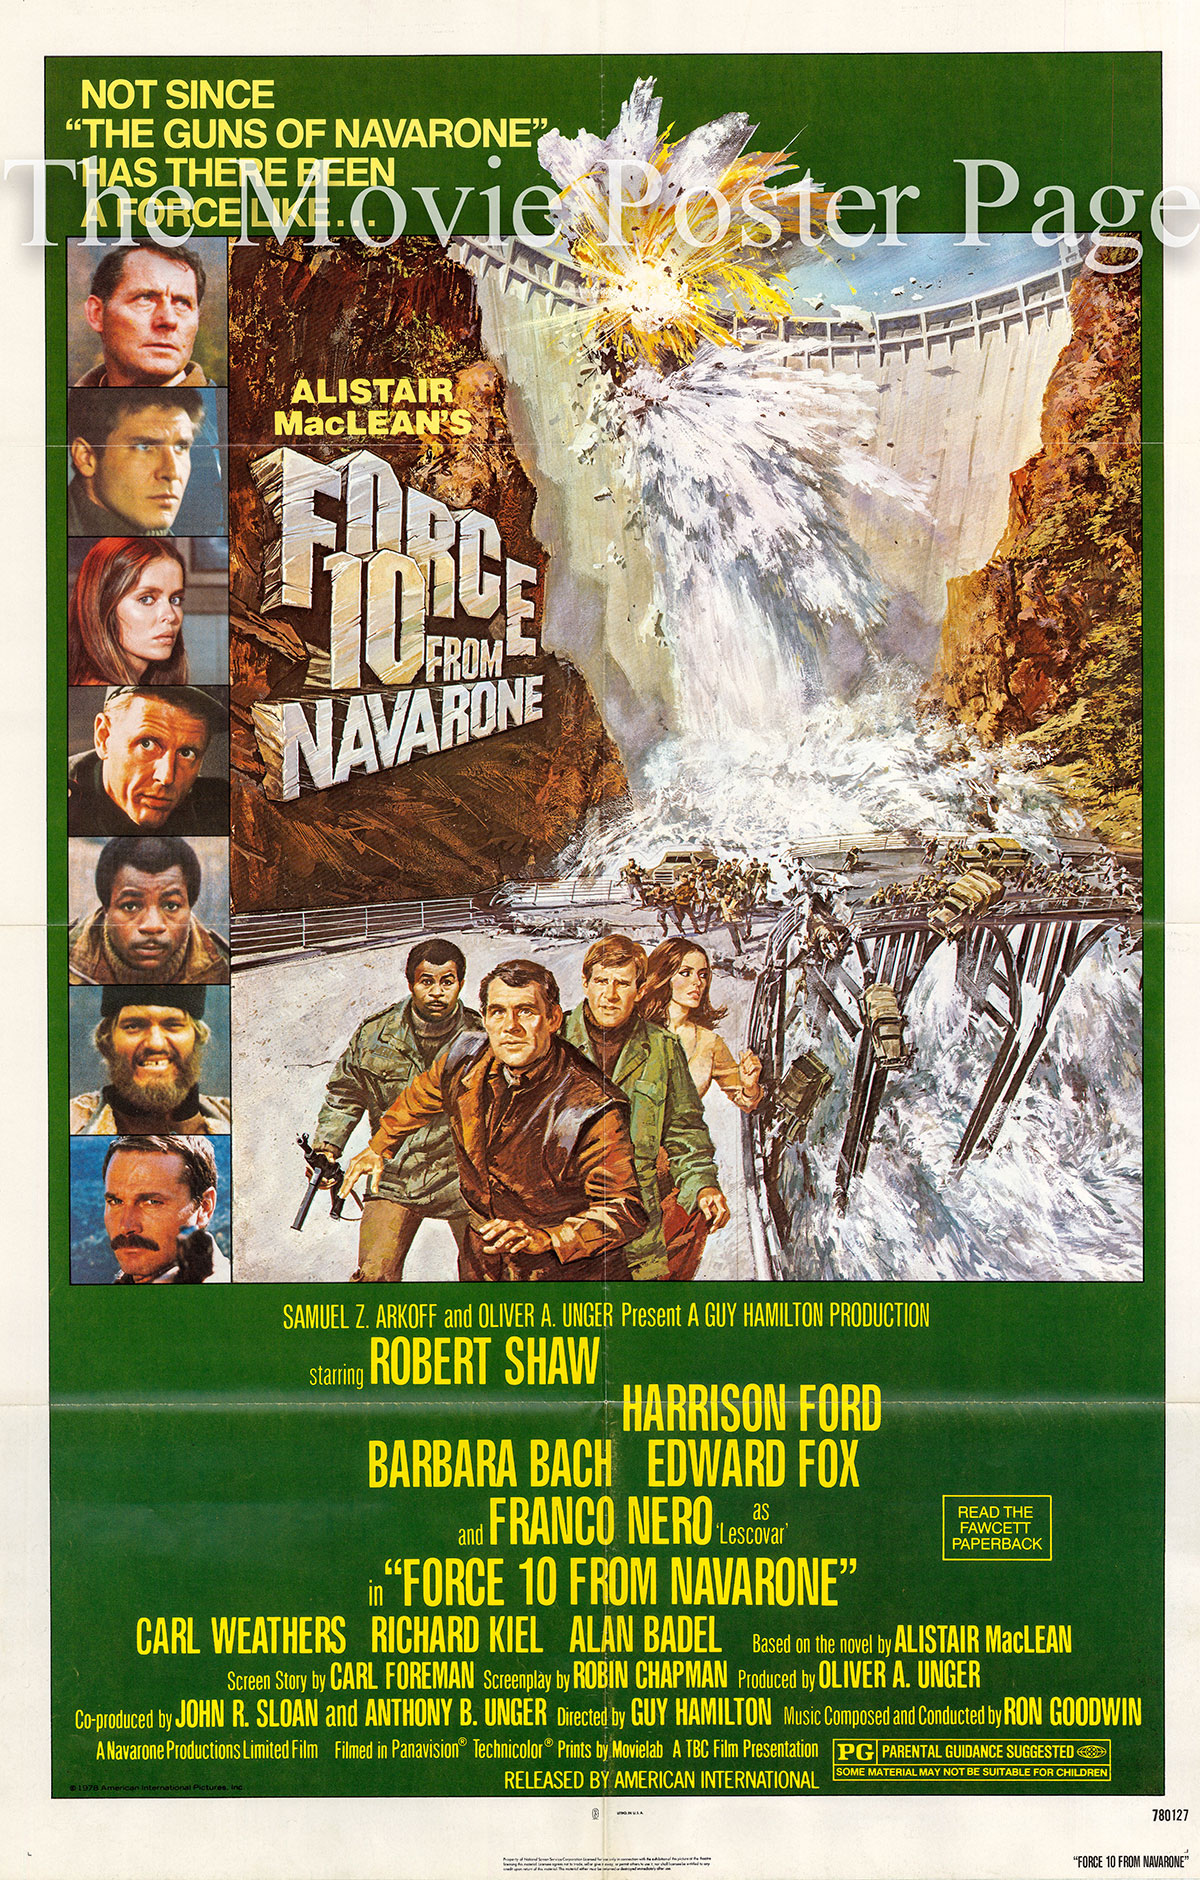 Pictured is a US one-sheet poster for the 1978 Guy Hamilton film Force 10 from Navarone starring Robert Shaw and Harrison Ford.